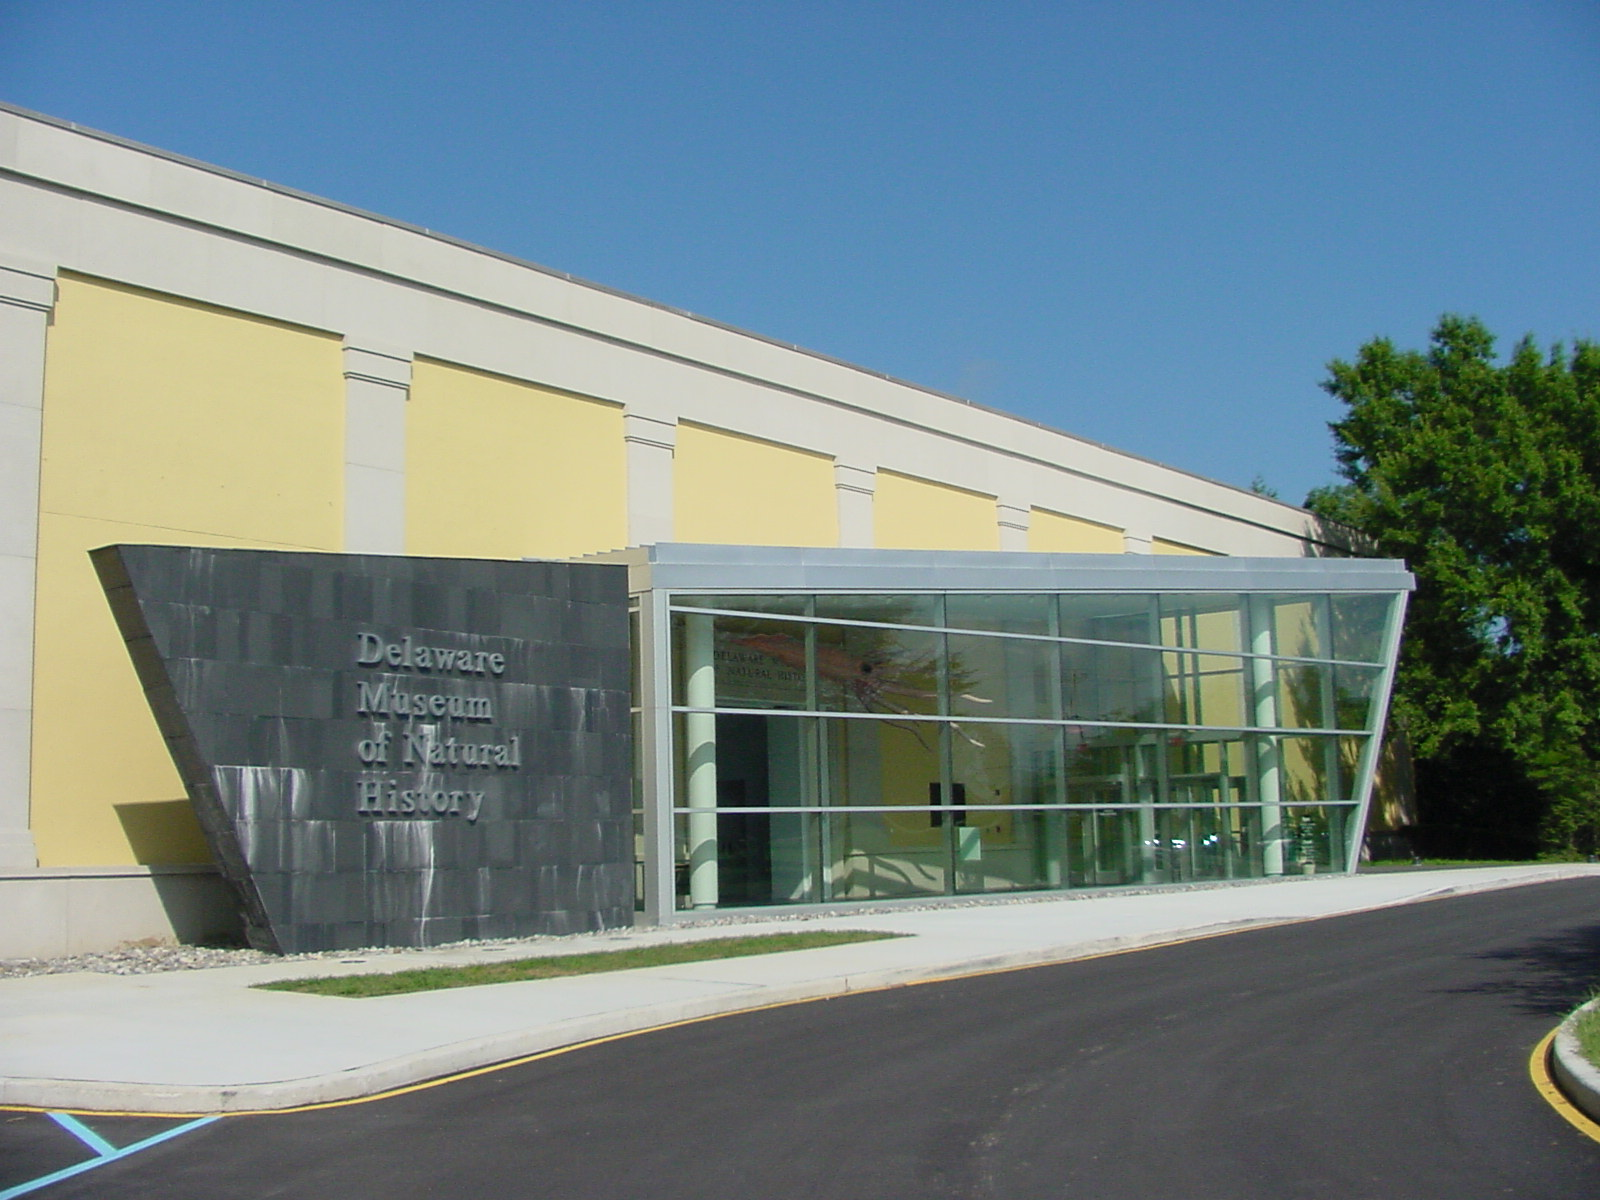 The Delaware Museum of Natural History